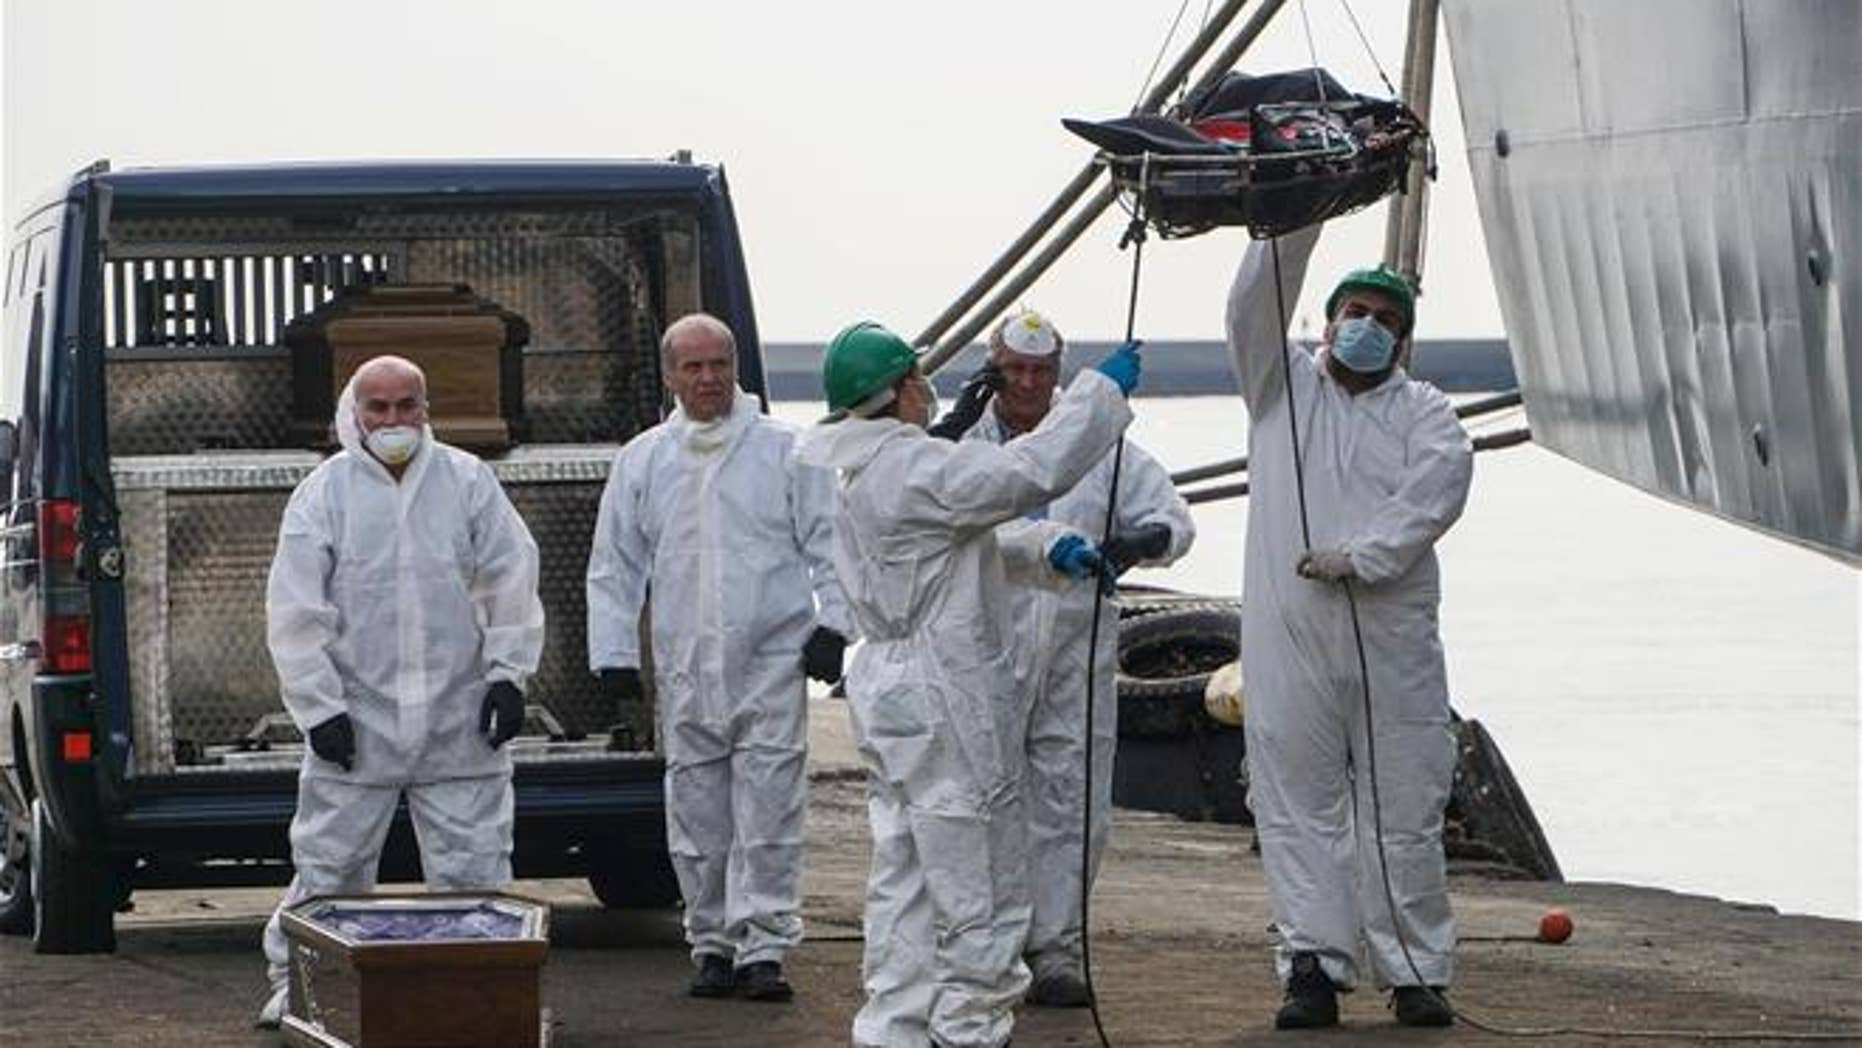 Rescuers recover a dead body from the Spanish ship 'Cantabria' in the harbour of Salerno, Italy, Sunday, Nov. 5 2017. UNHCR spokesman Marco Rotunno said that the 26 dead were involved in a shipwreck two days ago off Libya.